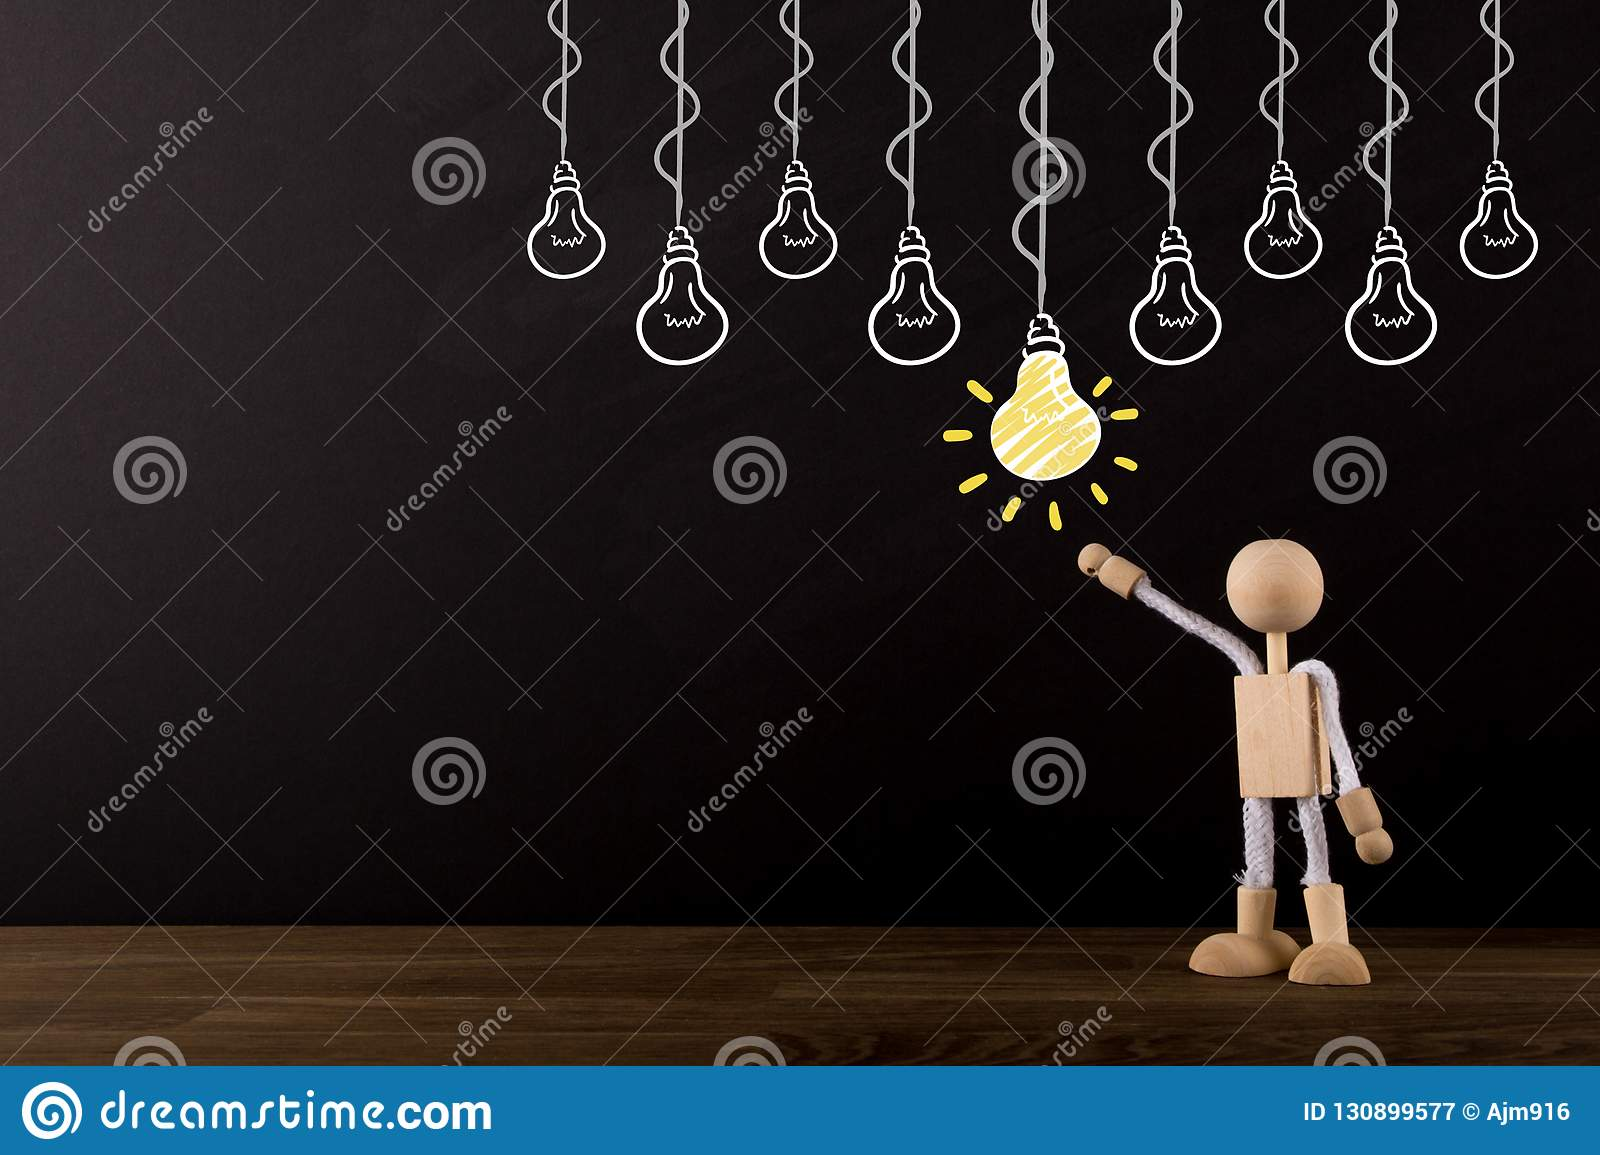 Idea concept, choosing the best idea, Brainstorming, Innovative Wooden Stick Figure pointing at a yellow light bulb